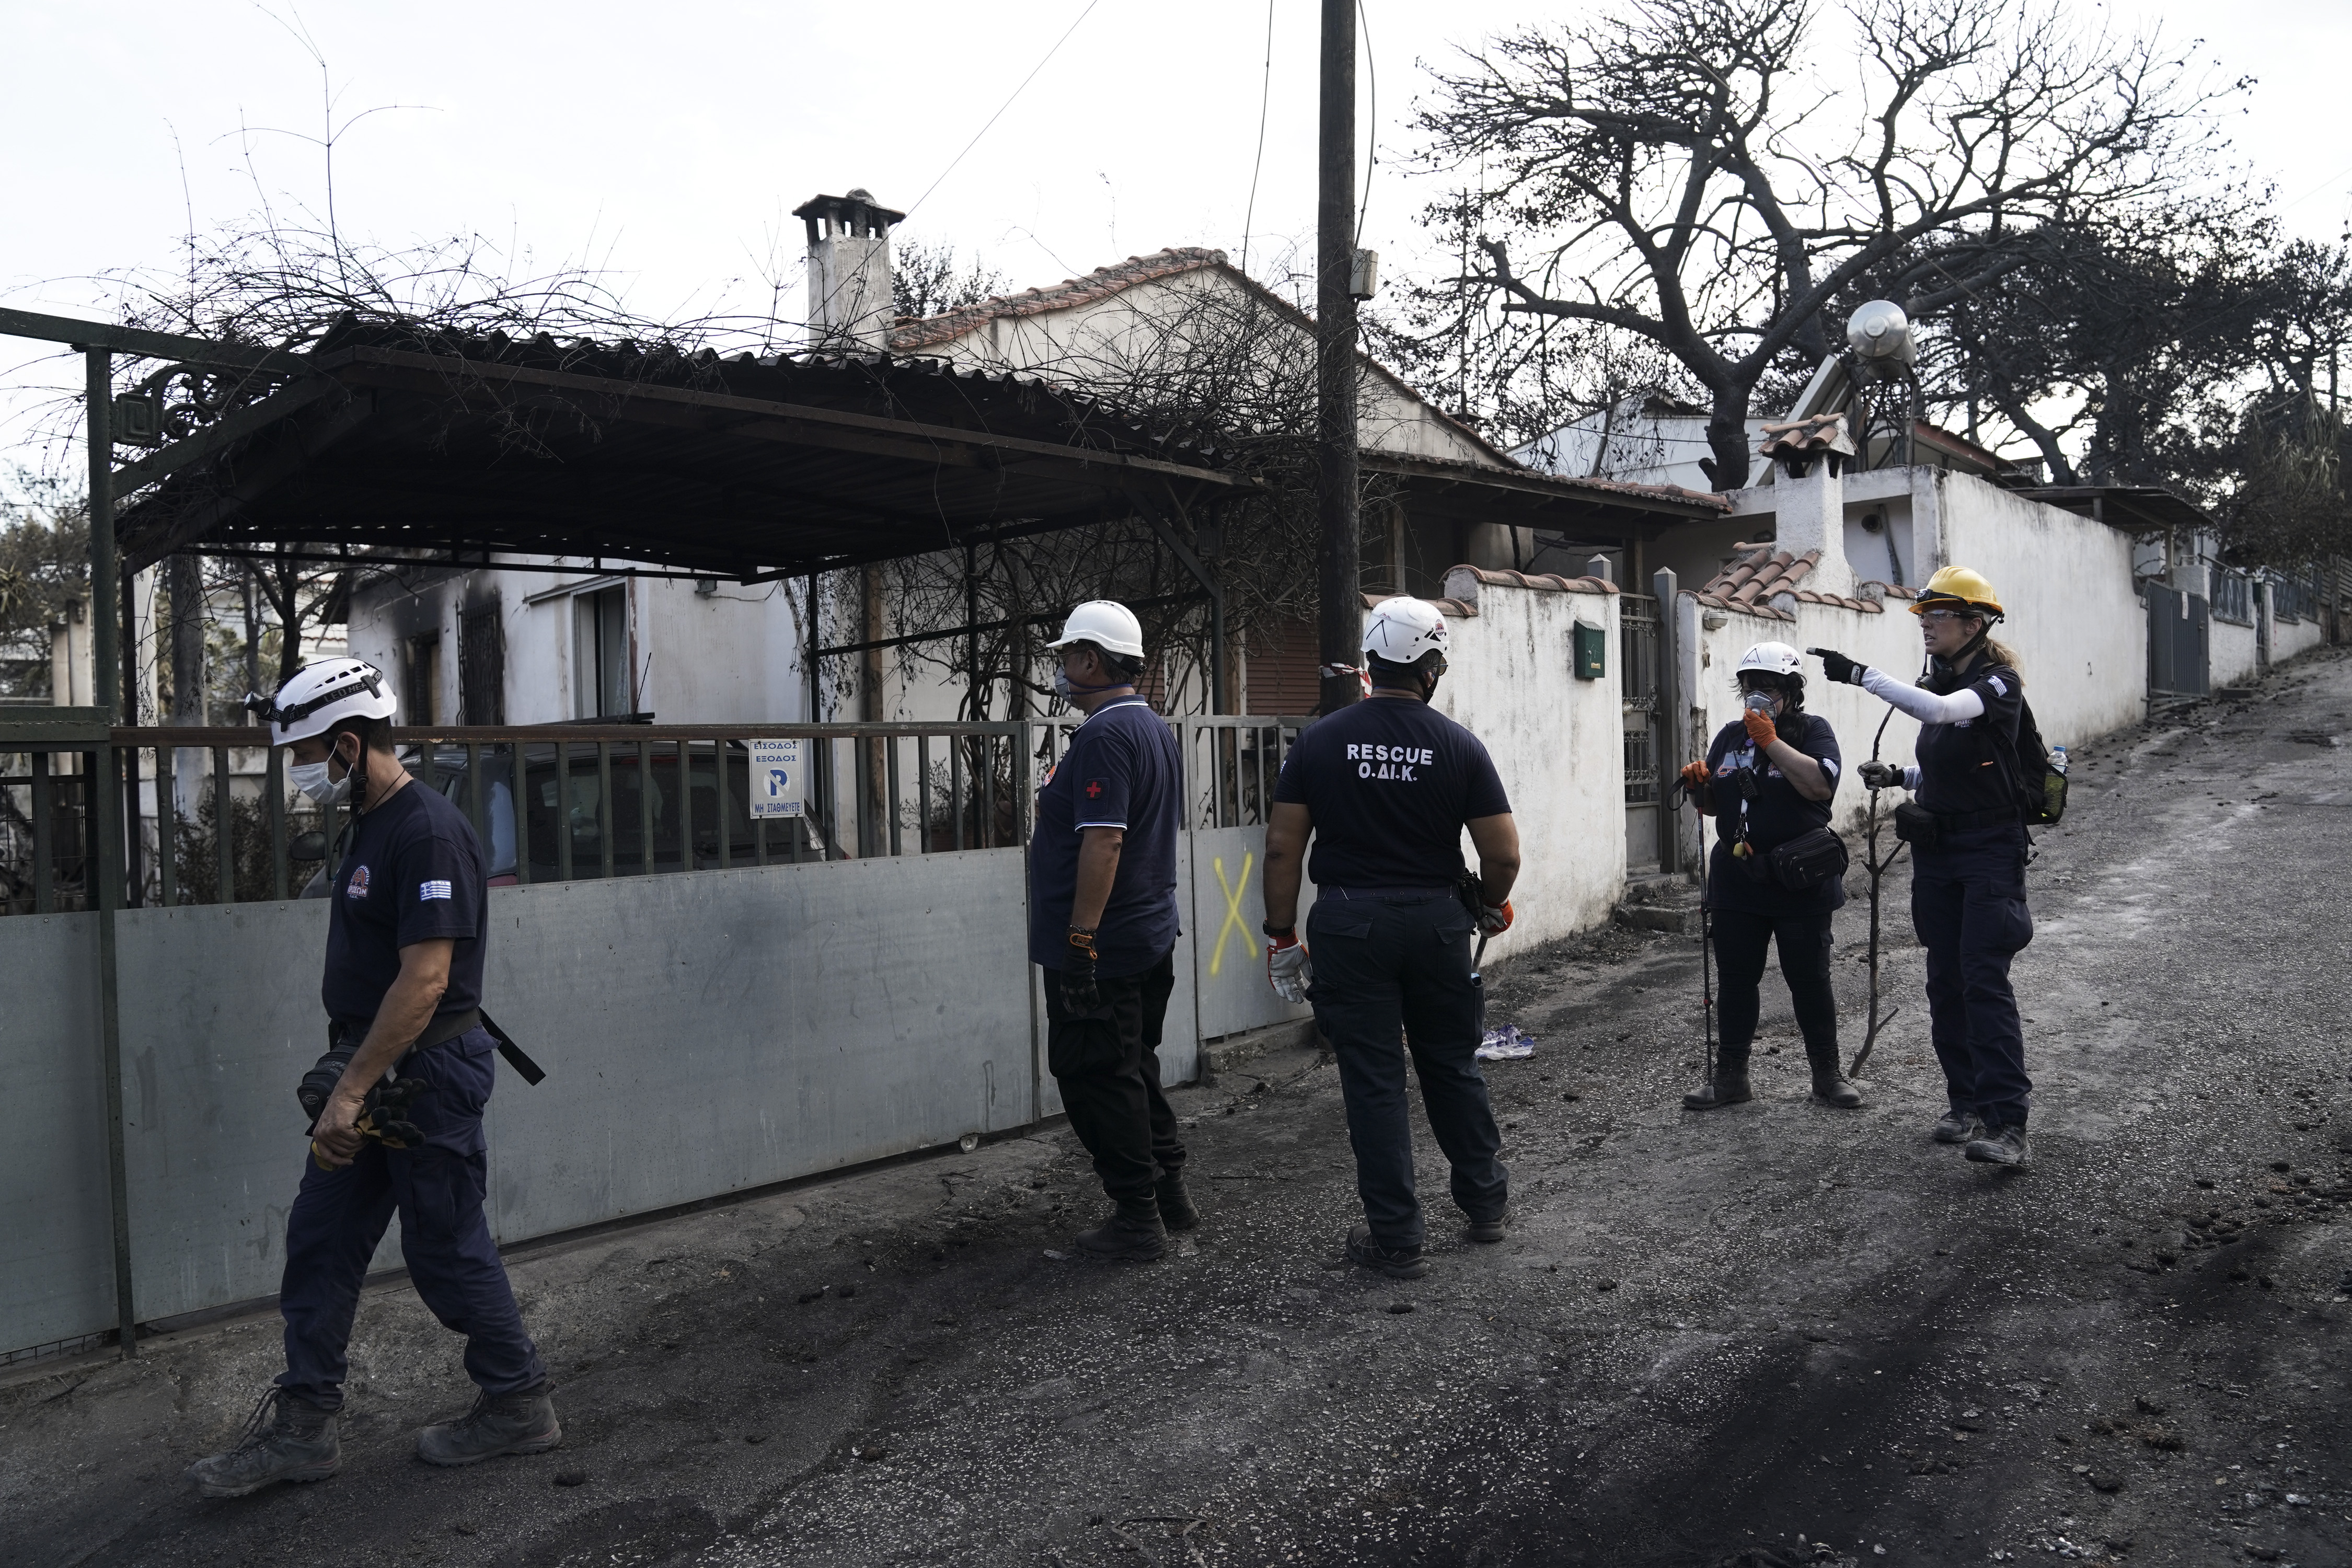 Questions about legal responsibility of police in battling wildfire | tovima.gr